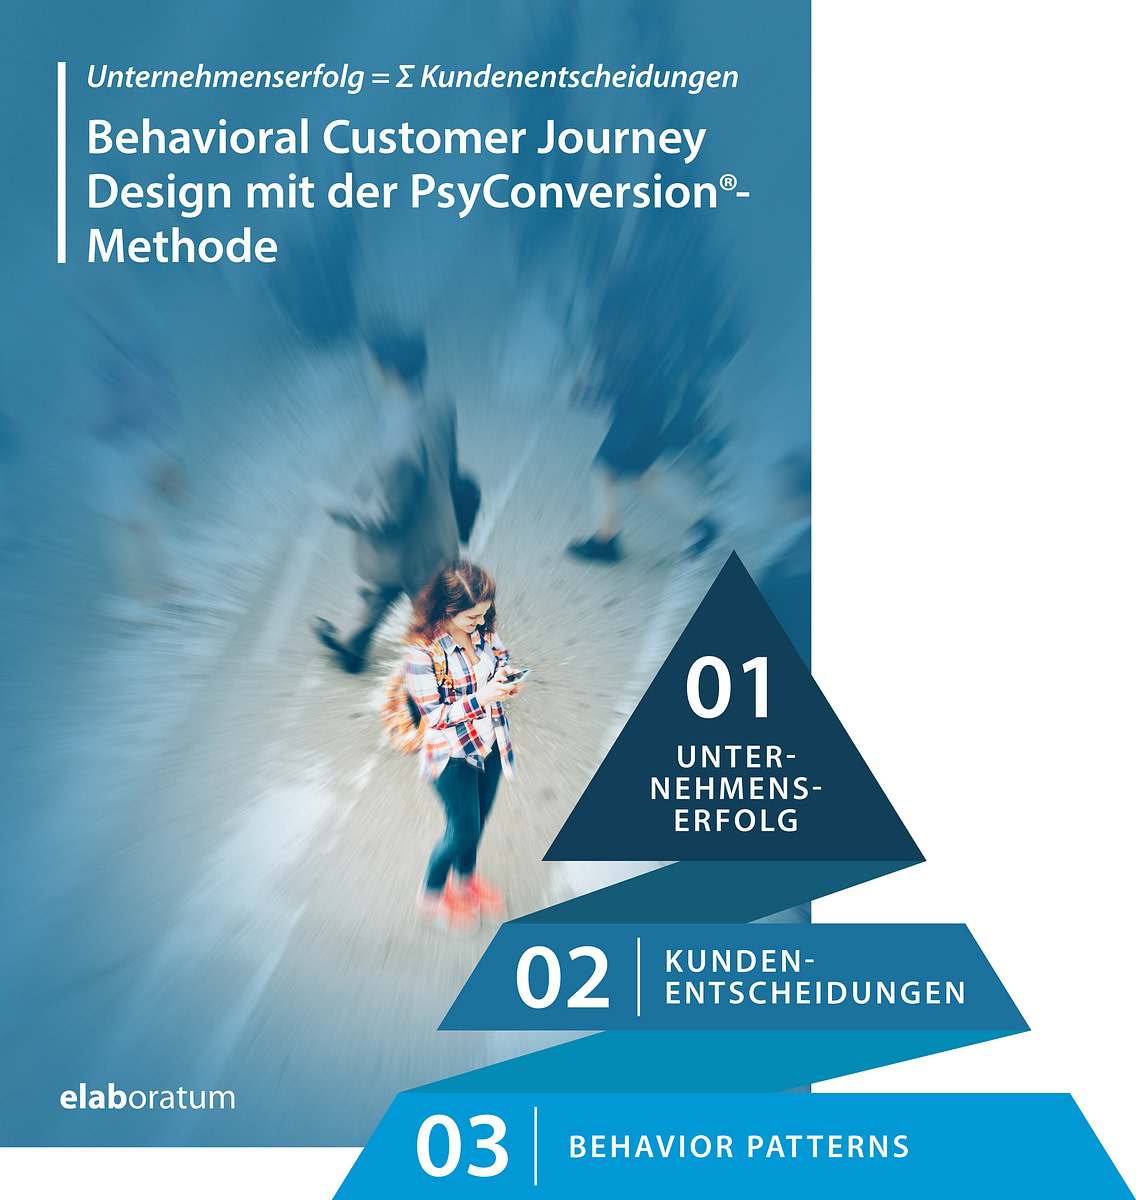 Whitepaper Unternehmenserfolg = ∑ Kundenentscheidungen Behavioral Customer Journey Design mit der Psyconversion®-Methode